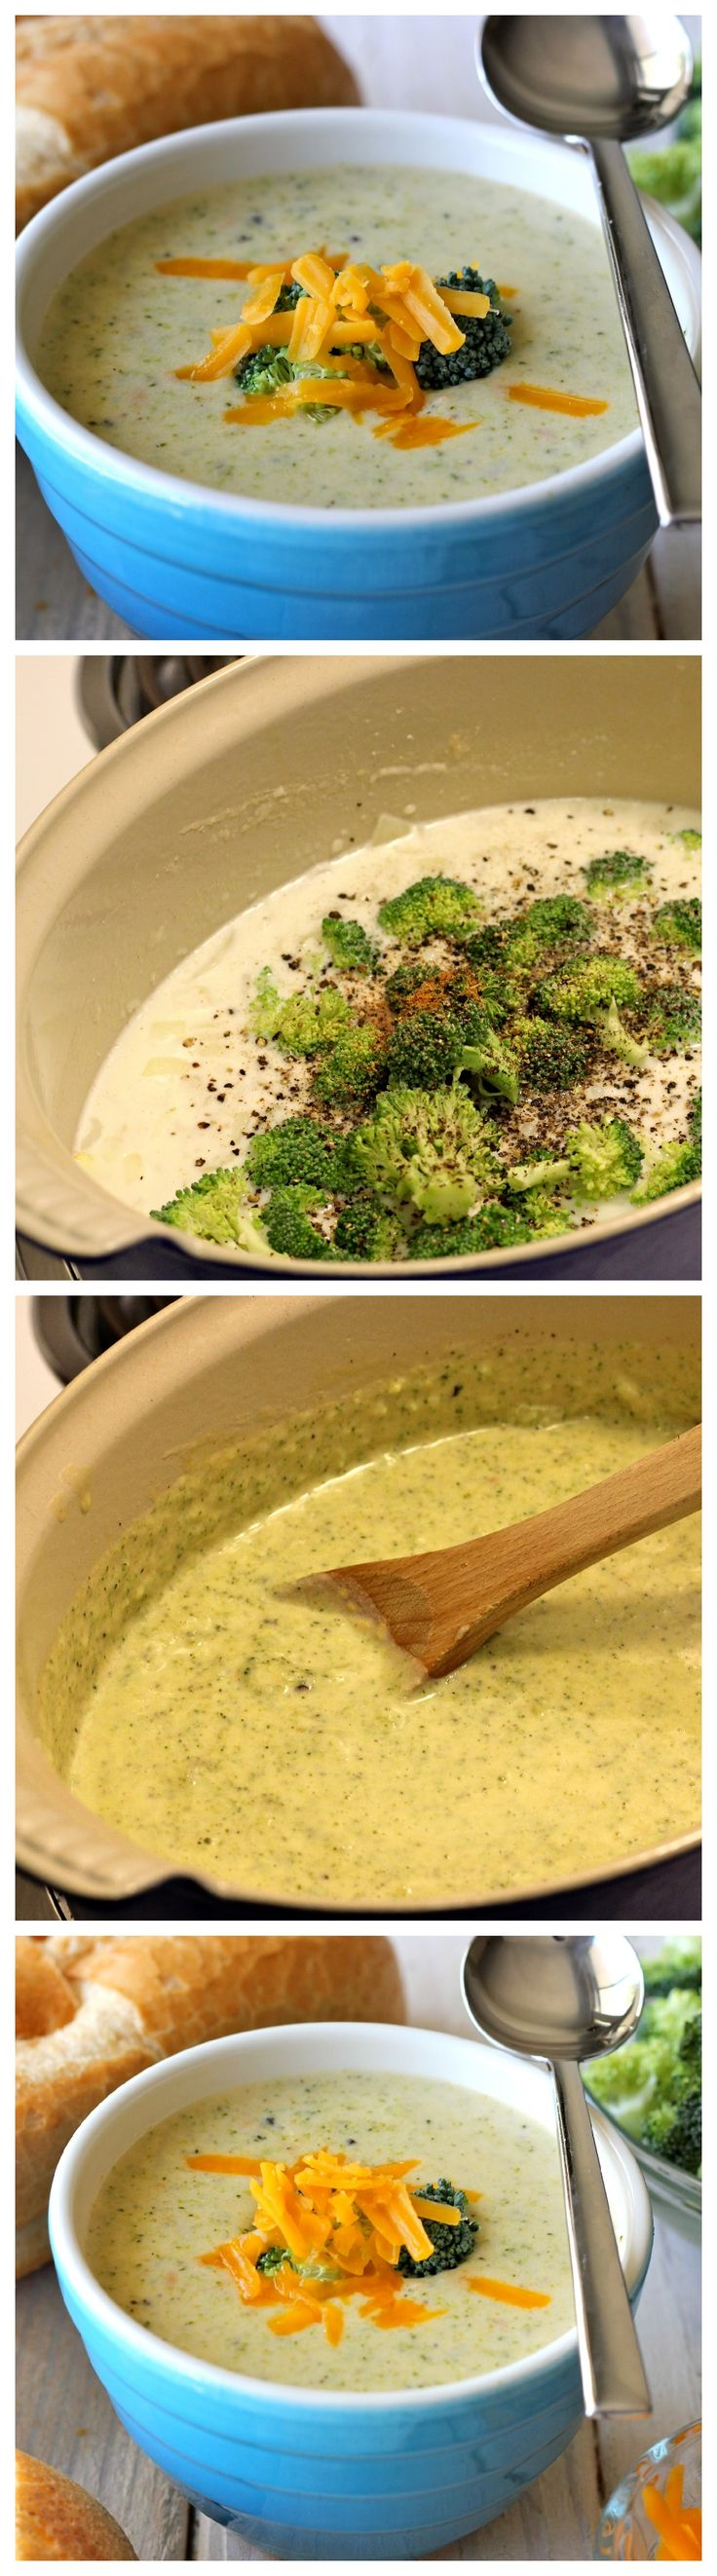 Cream of Broccoli Cheese Soup - So cozy, so cheesy, and chockfull of veggies!